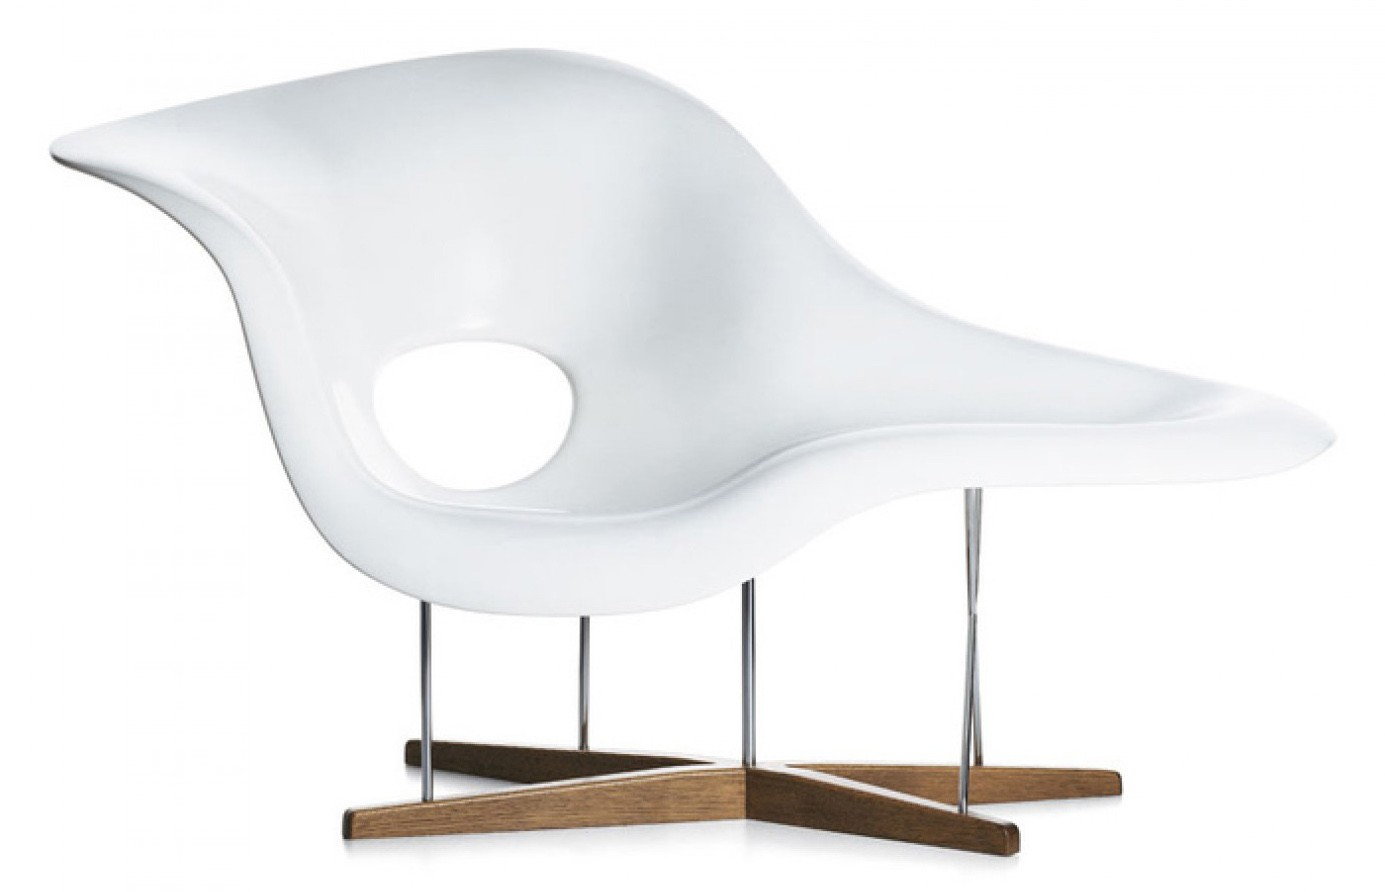 Charles eames lounge chair la chaise chair design lounge for Design eames